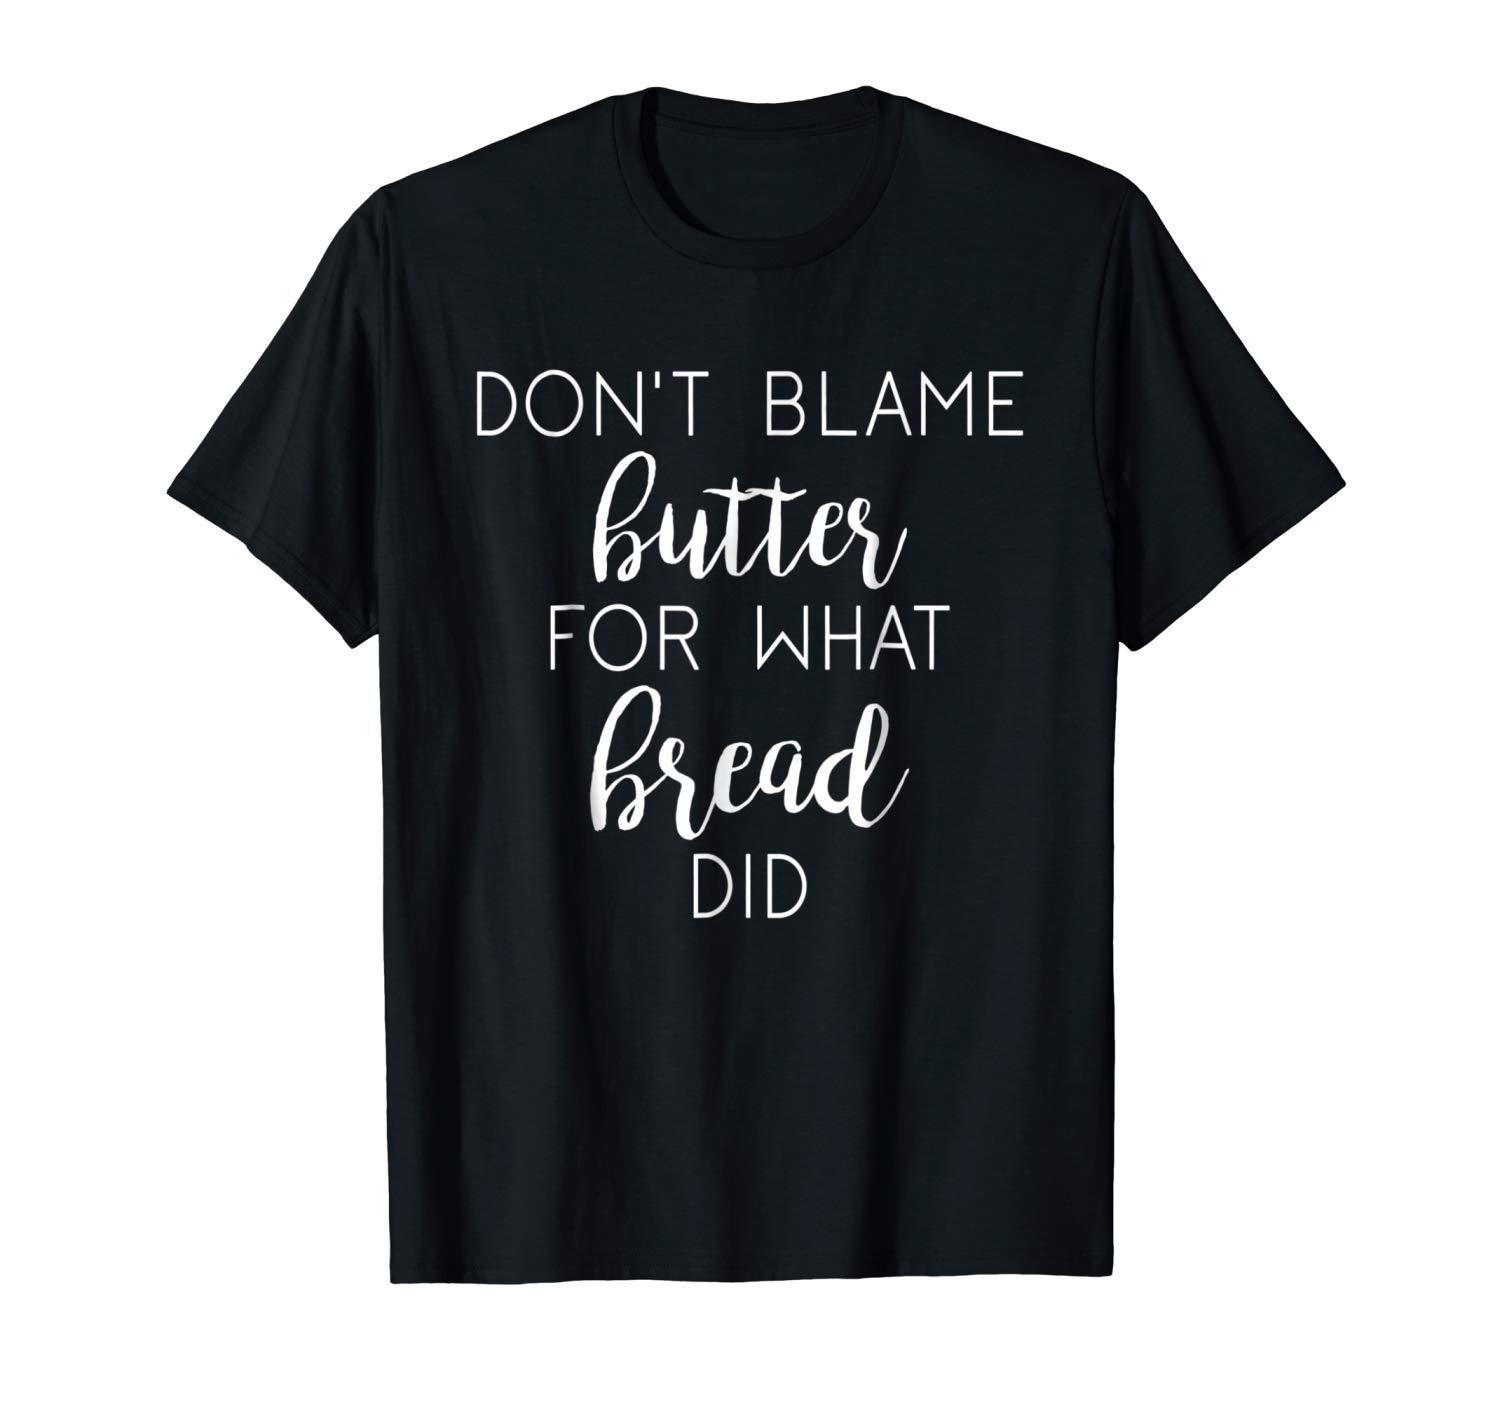 Don't Blame Butter For What Bread Did Funny Keto Diet Ketosis Black T-shirt Cool Casual pride t shirt men Unisex Fashion